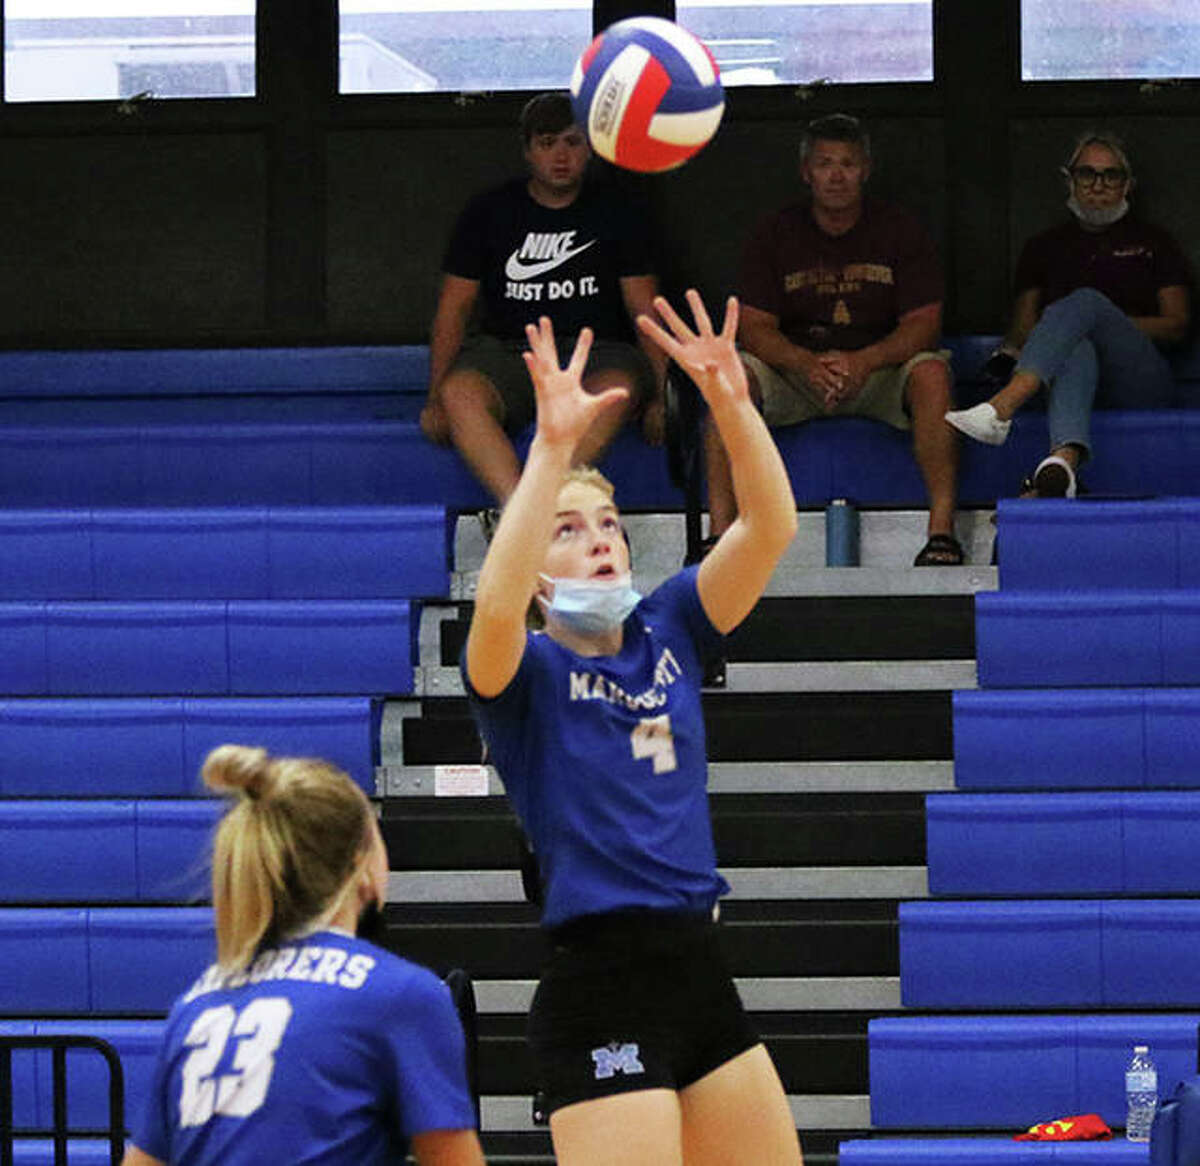 Marquette Catholic's Allison Geiger (4) pushes the ball over the net in a match last week at the Roxana Tourney. On Monday, Geiger had a team-high five kills in the Explorers' win at Maryville Christian.